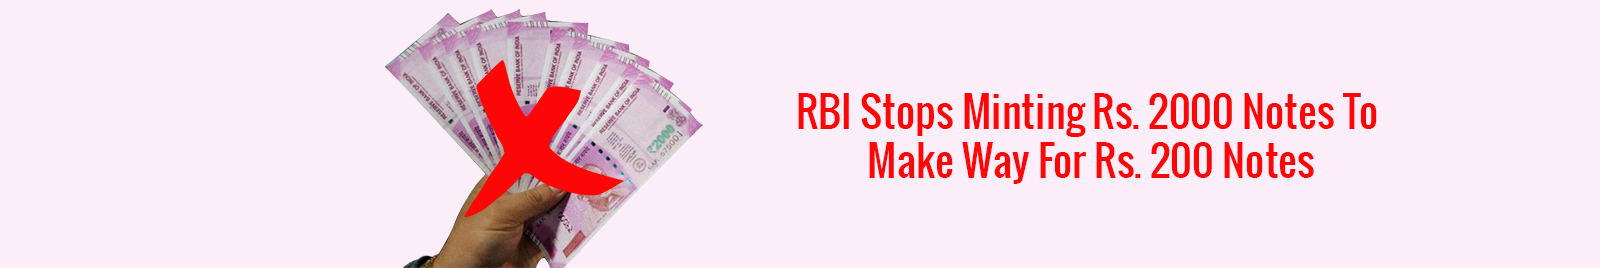 RBI stops printing Rs. 2000 notes